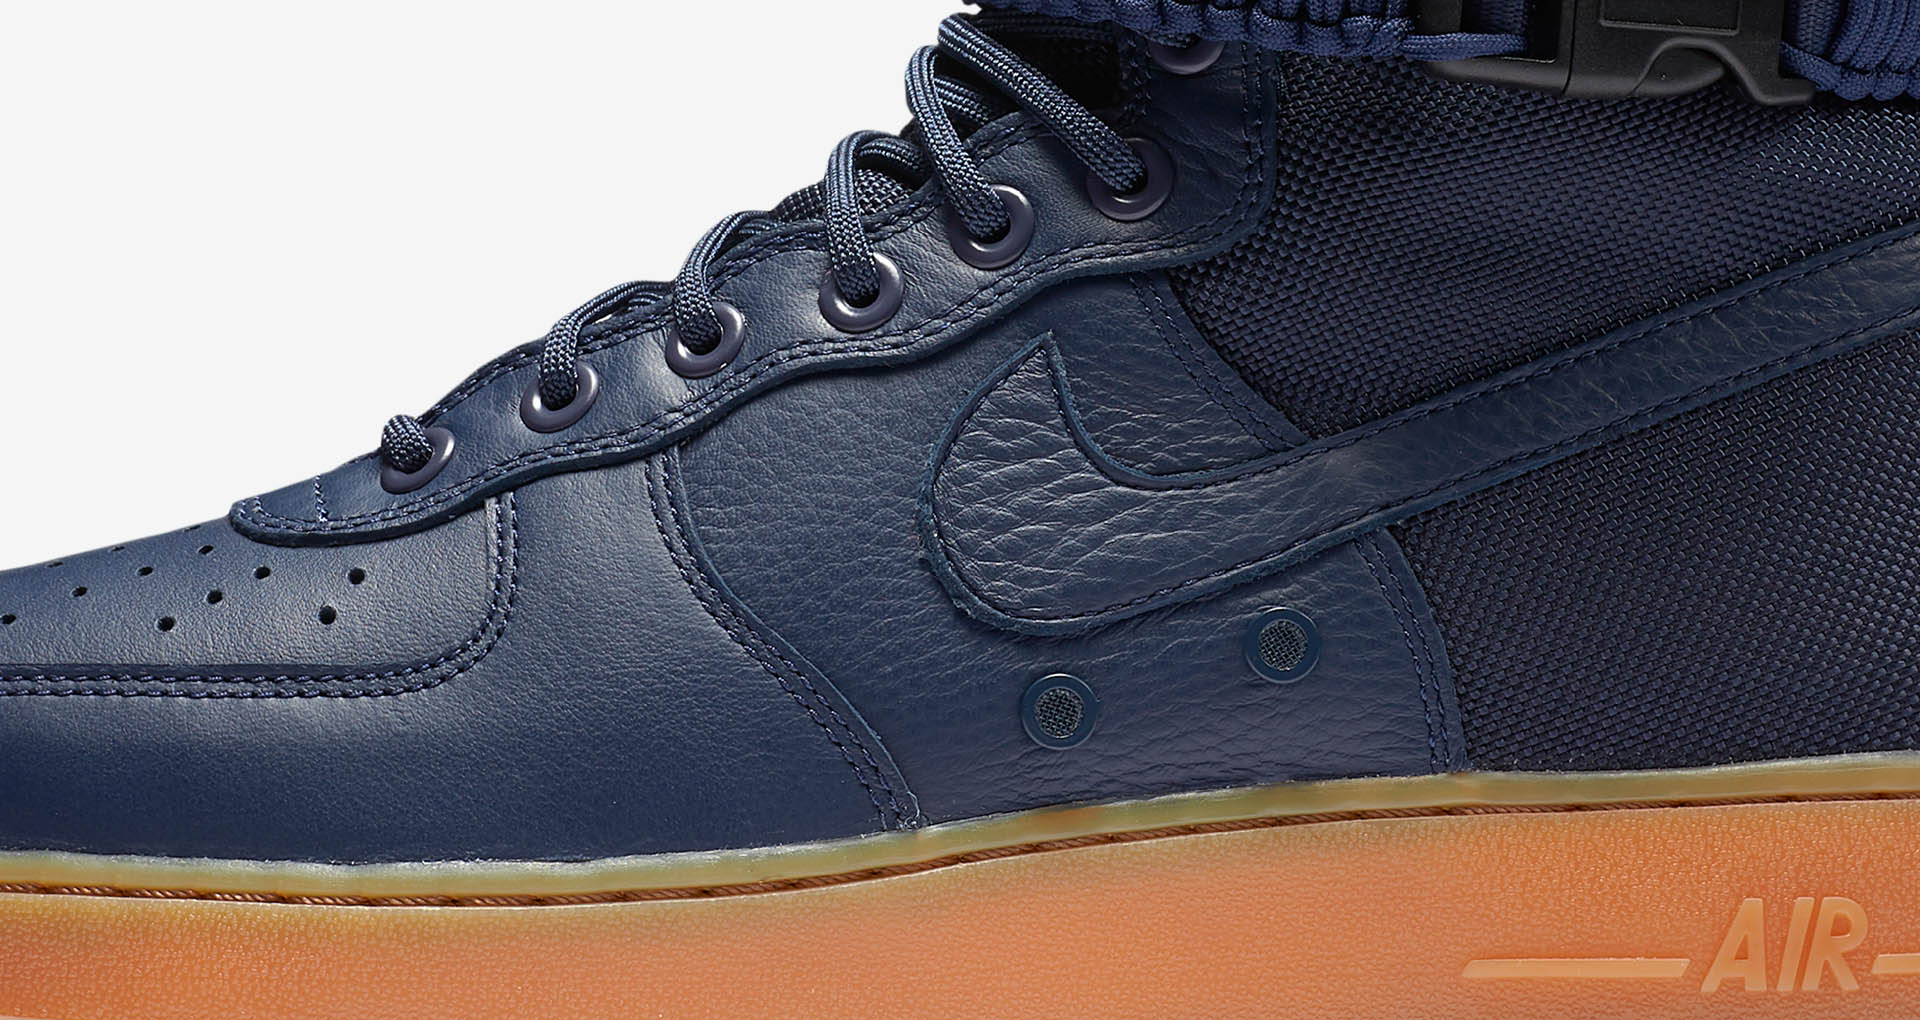 nike-sf-af1-special-field-air-force-1-midnight-navy-gum-1